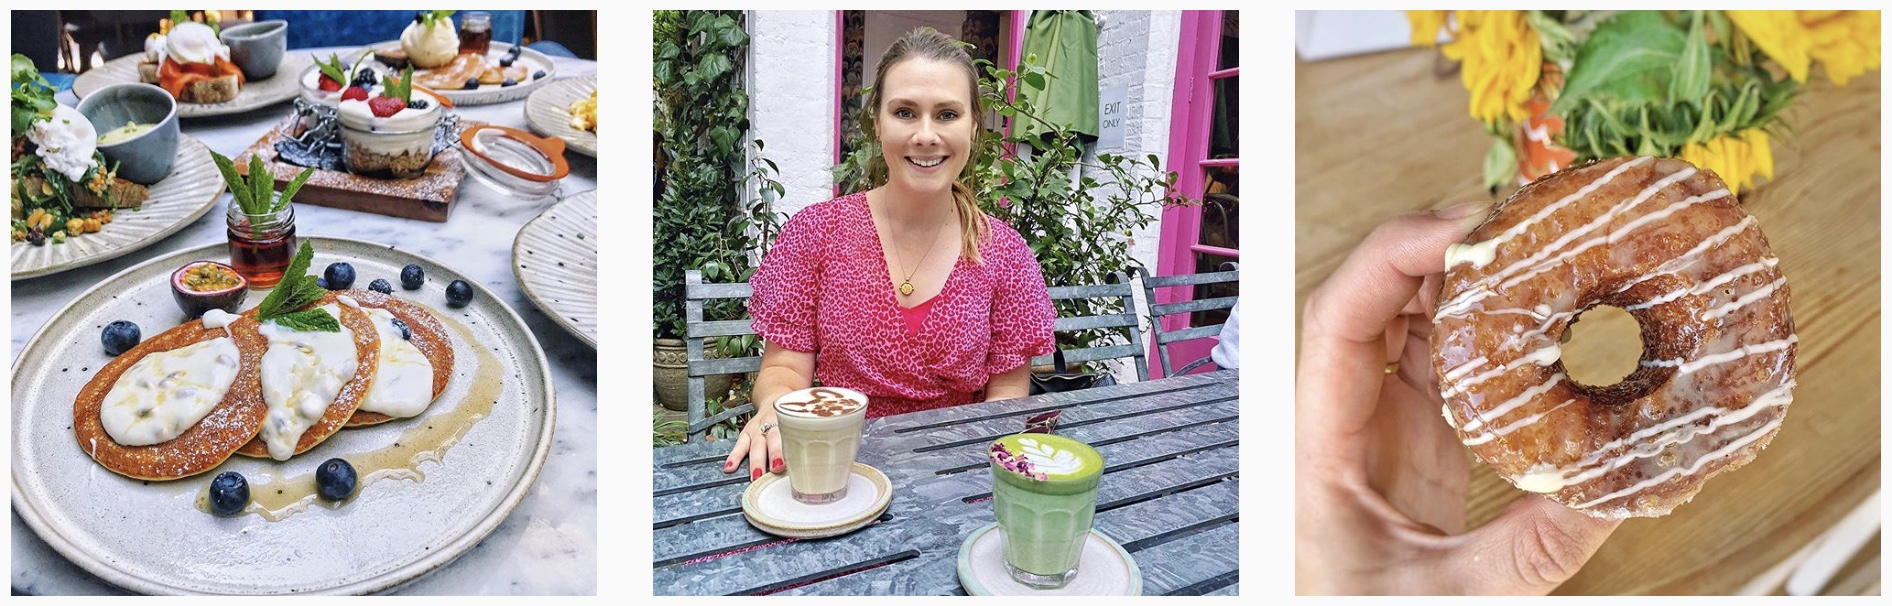 Jess | Food Travel Fitness @girlwhobrunches